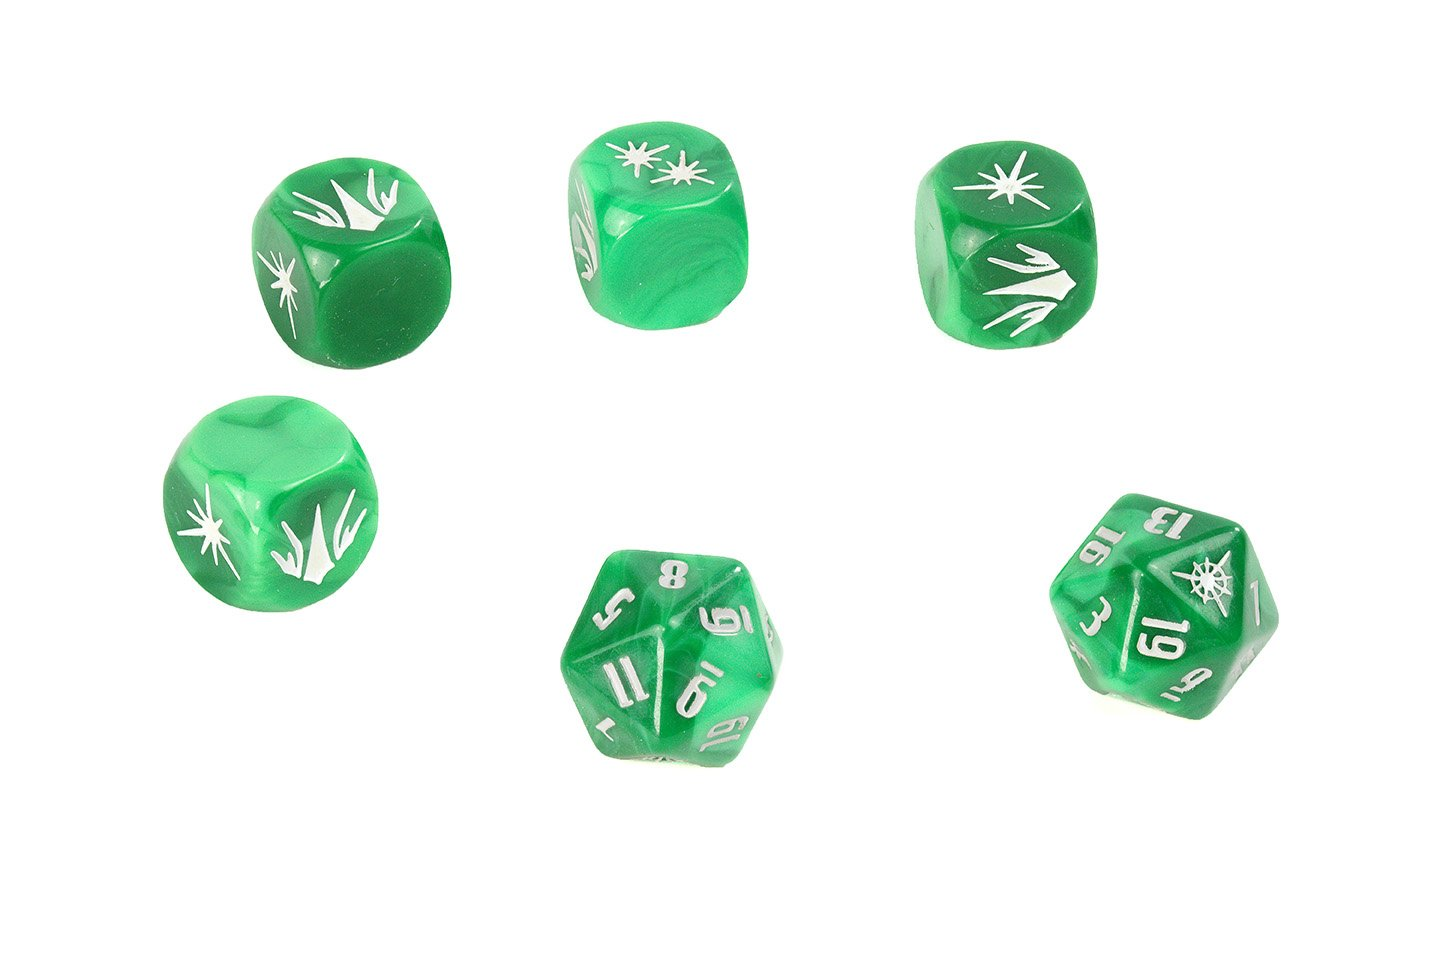 John Carter Thark Dice Set